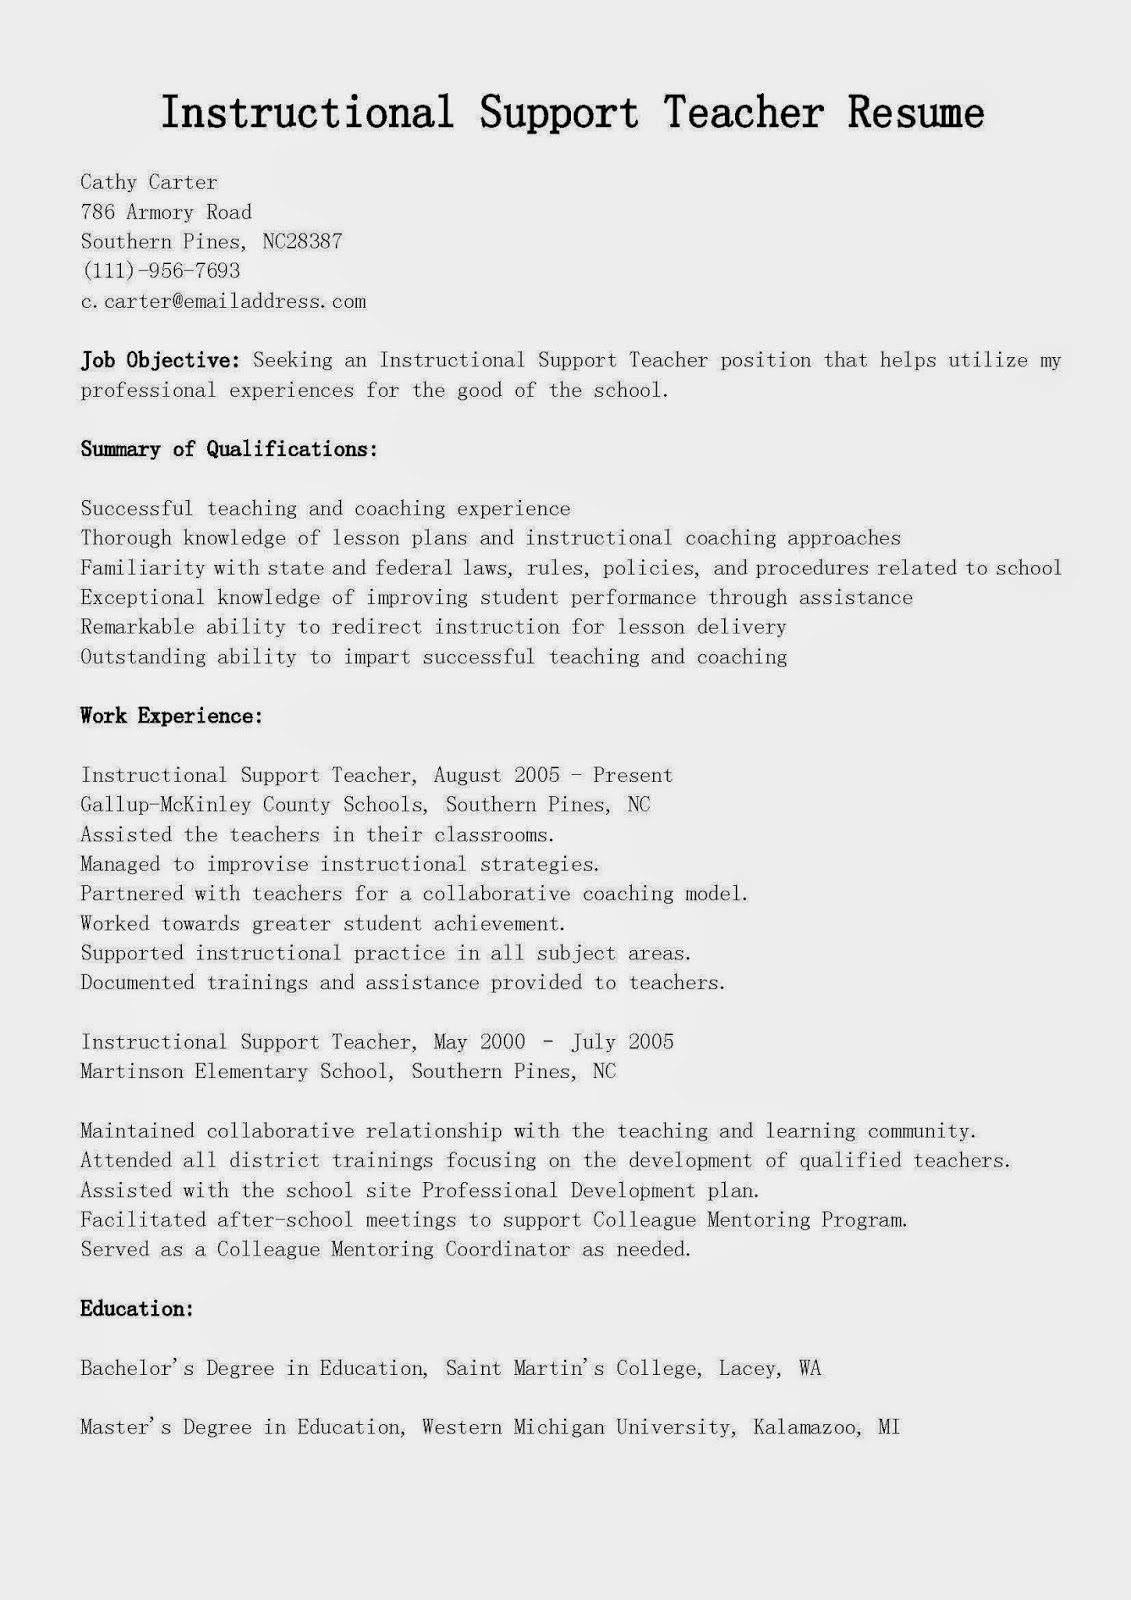 free resume help banking associate financial industry banking